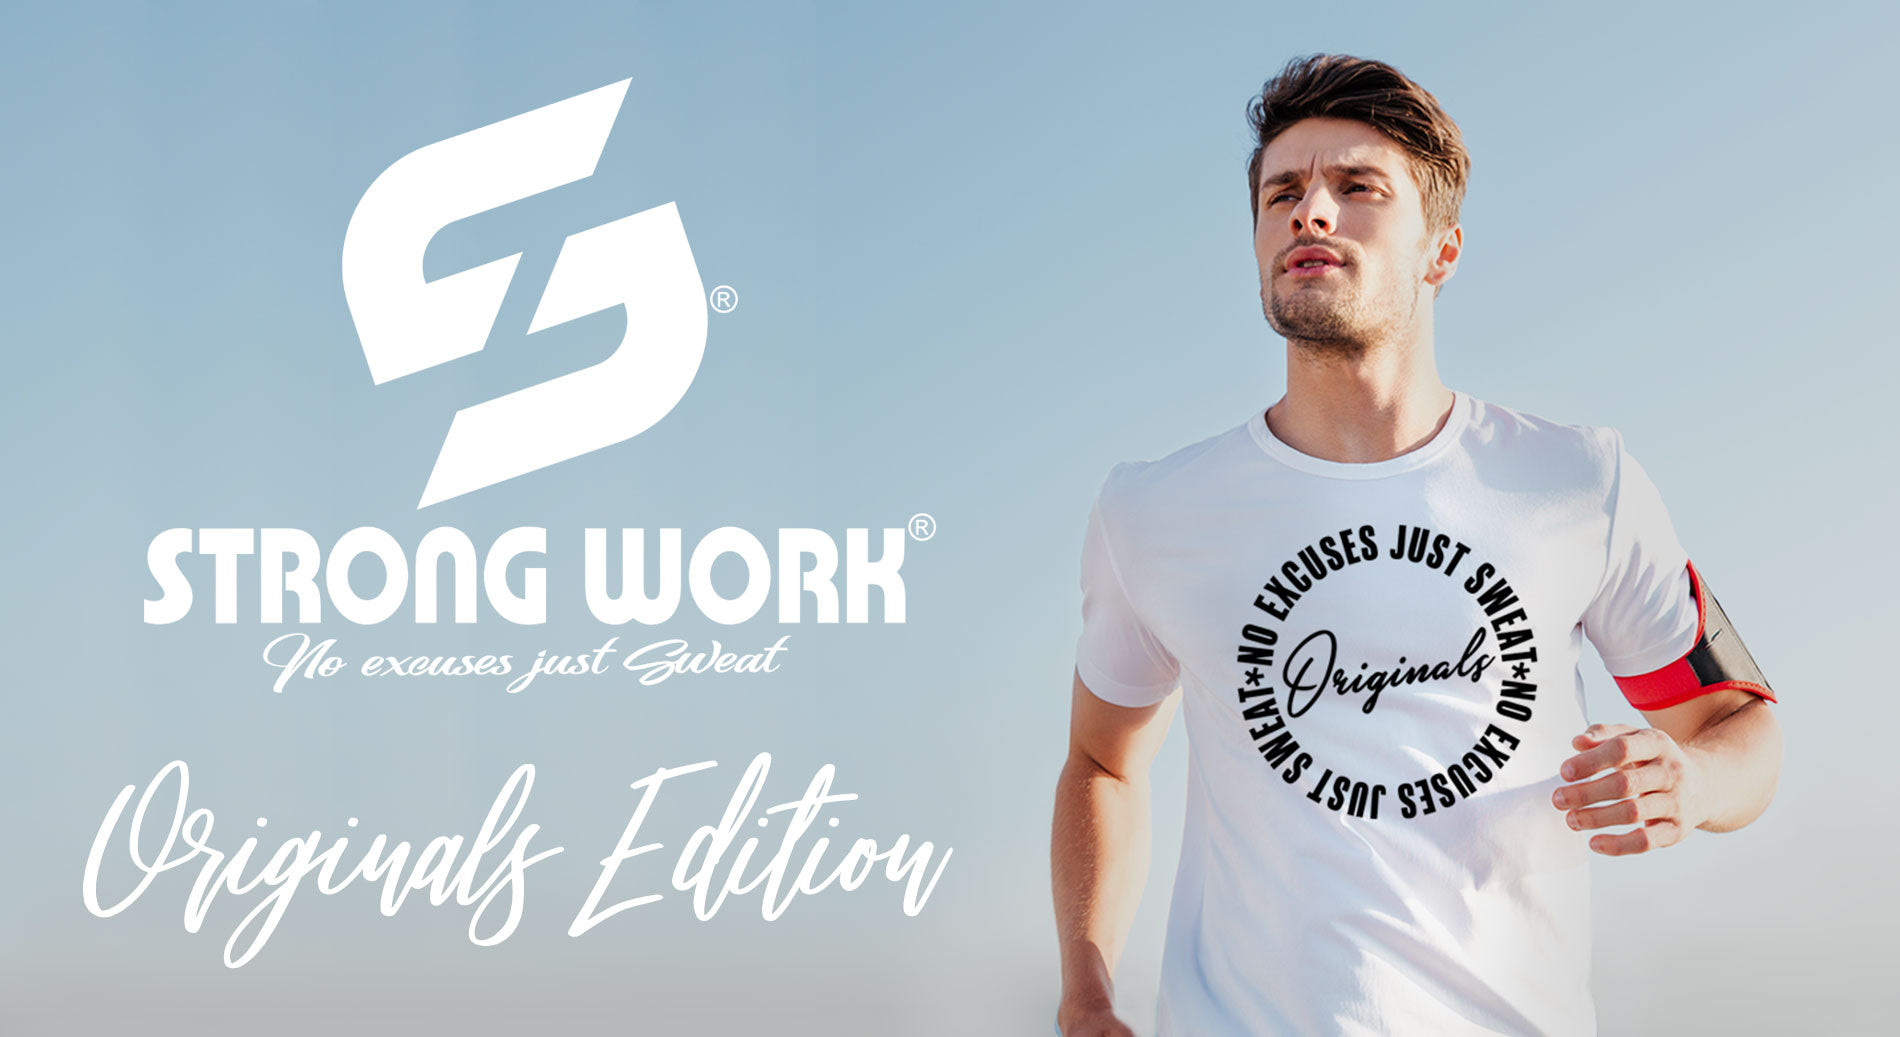 T-SHIRT POUR HOMME STRONG WORK ORIGINALS EDITION - SPORTSWEAR ECO-RESPNSABLE